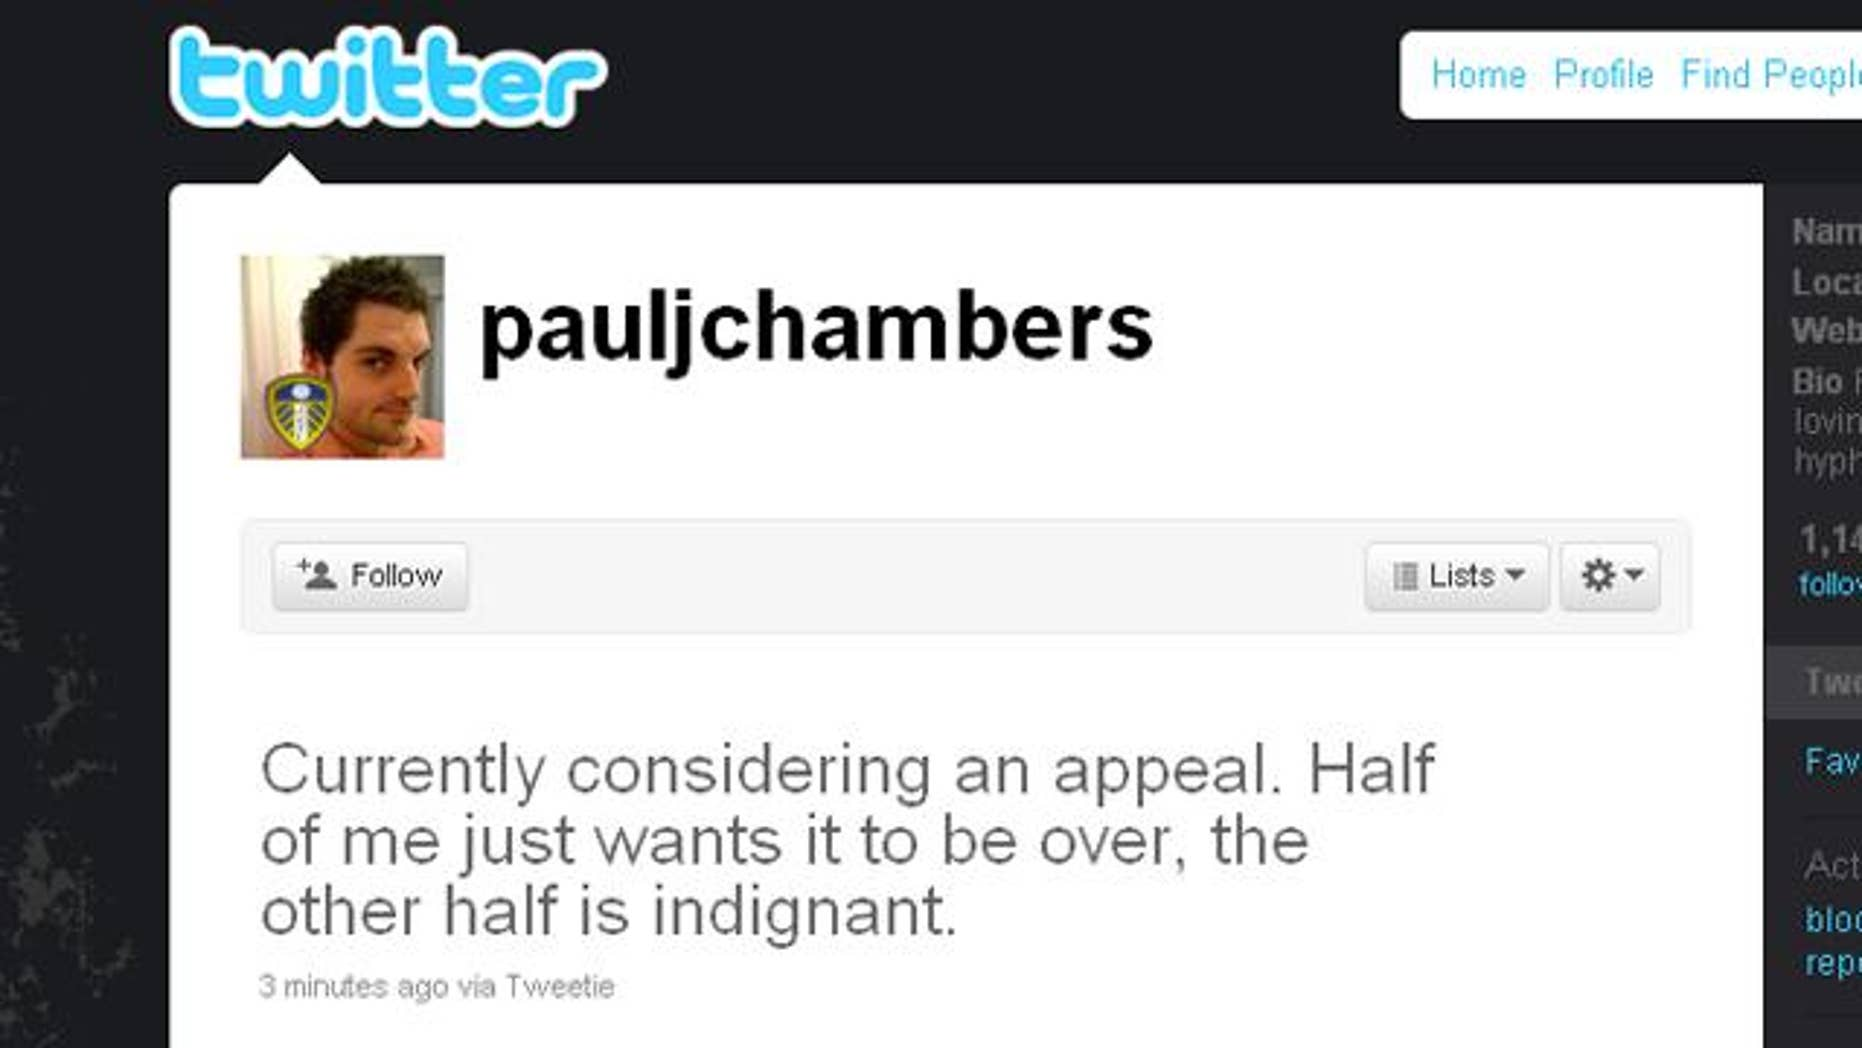 A screen capture of Paul Chambers' Twitter feed, following a conviction for a tweet he wrote threating to blow up an airport.